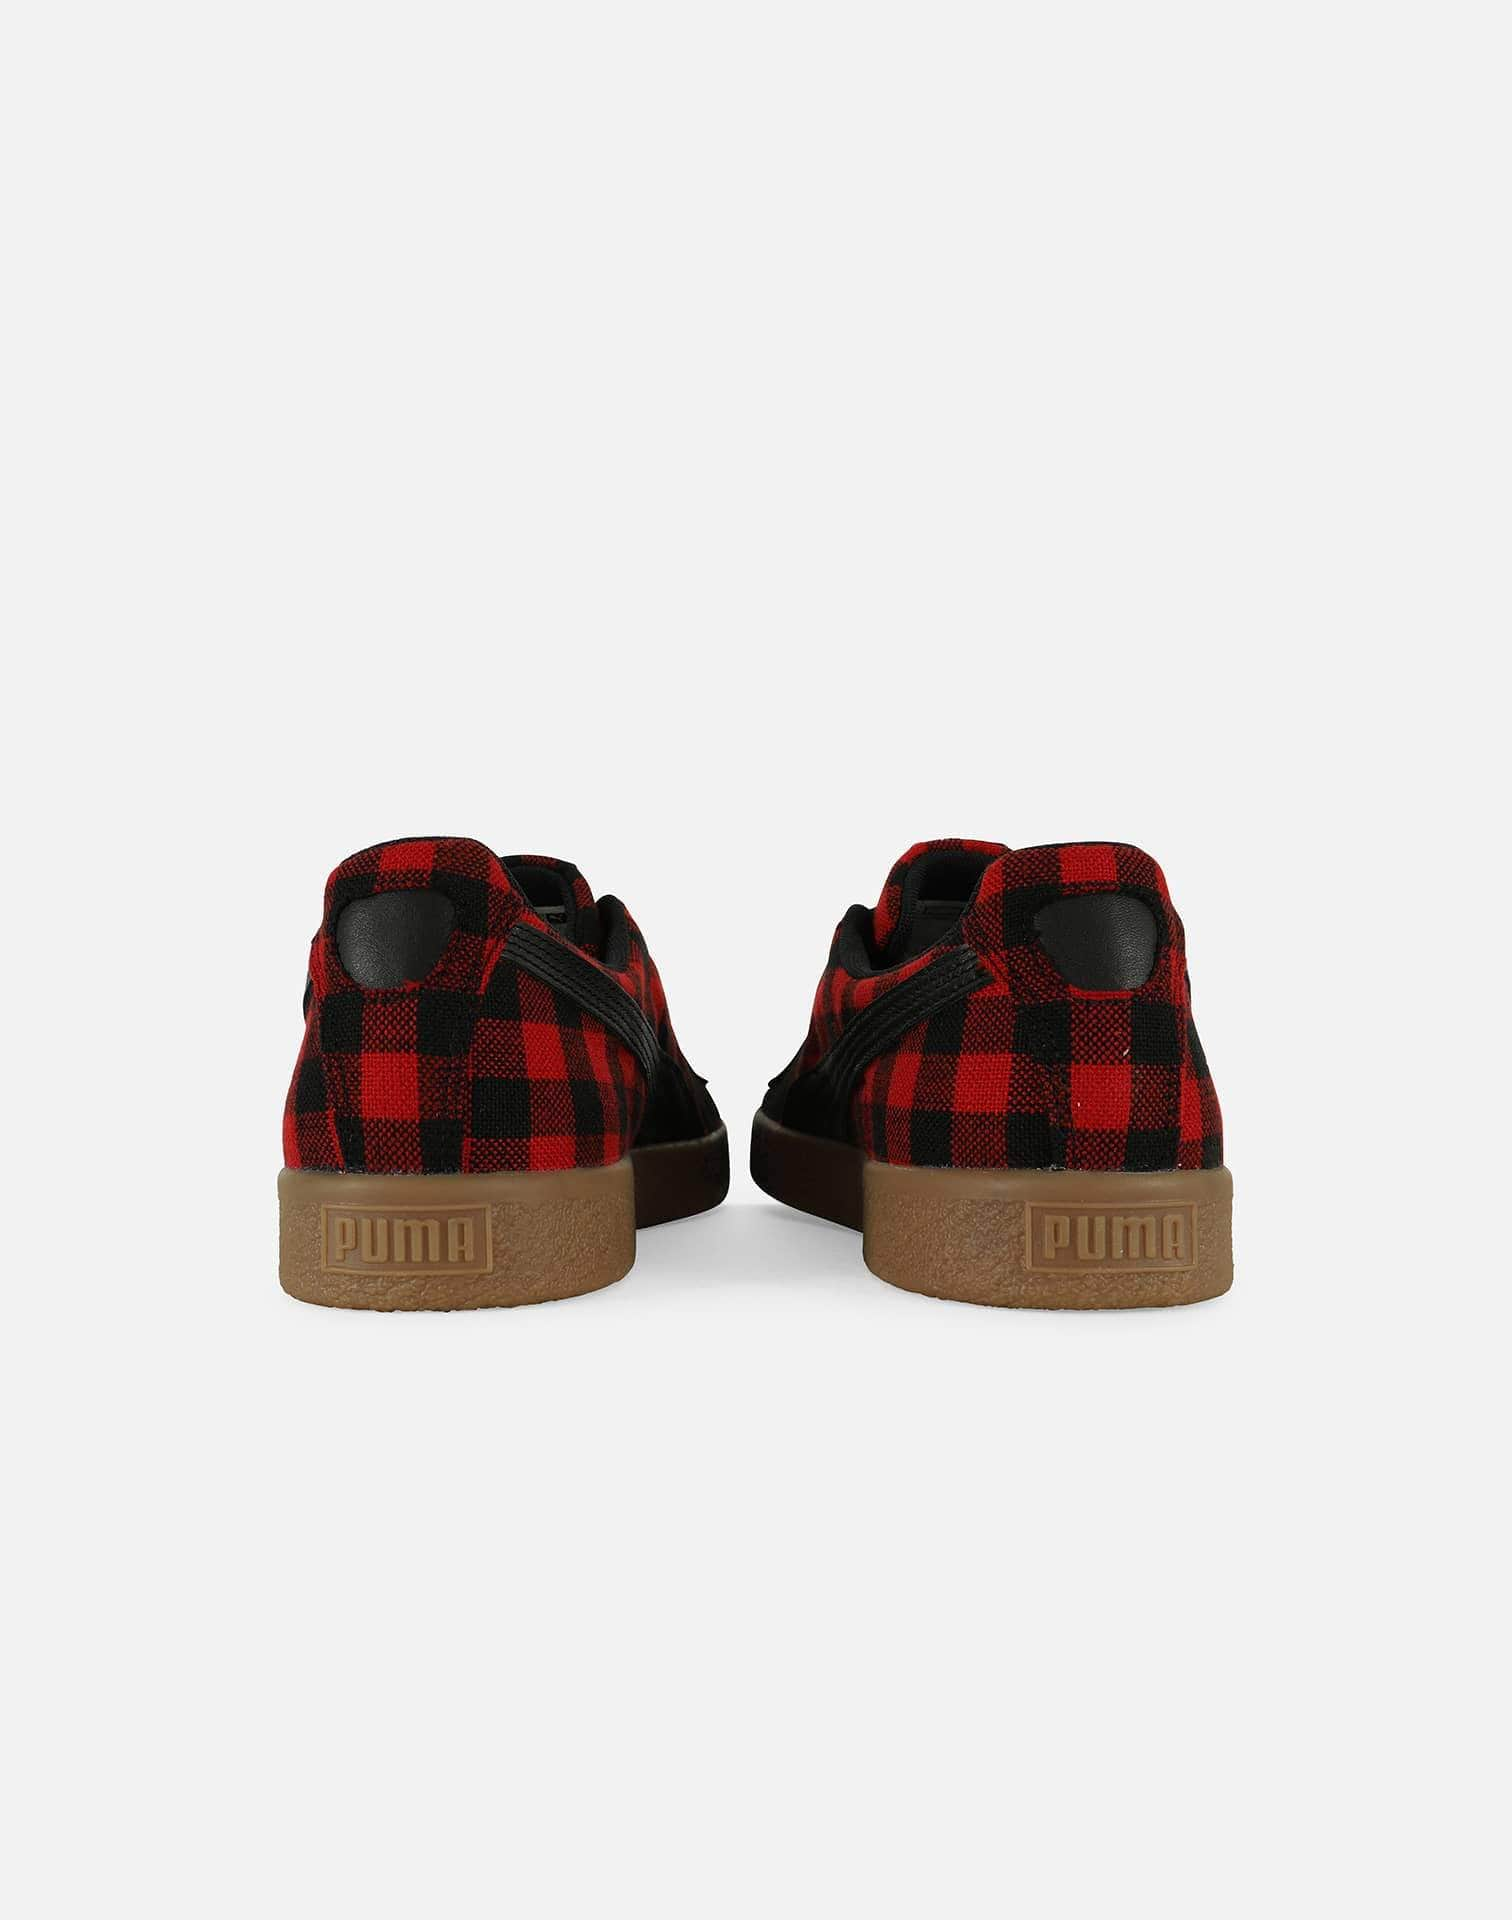 PUMA Men's Clyde Red Buffalo Plaid